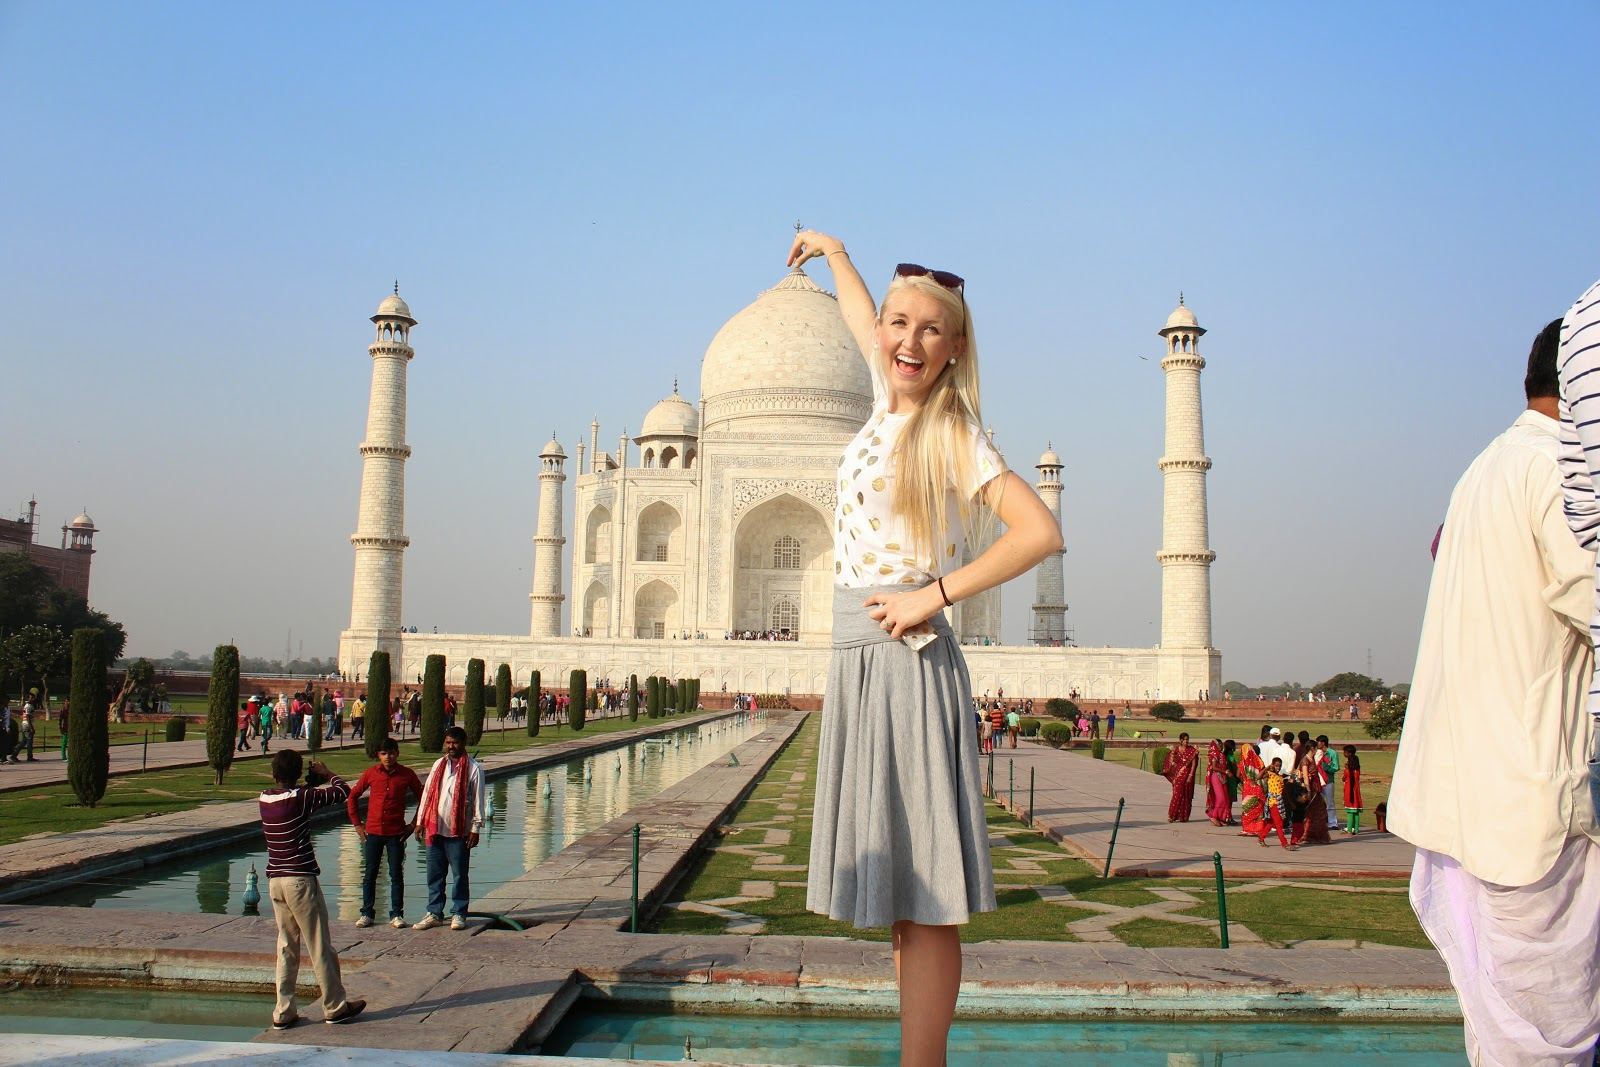 the taj mahal : one of the wonders of the world